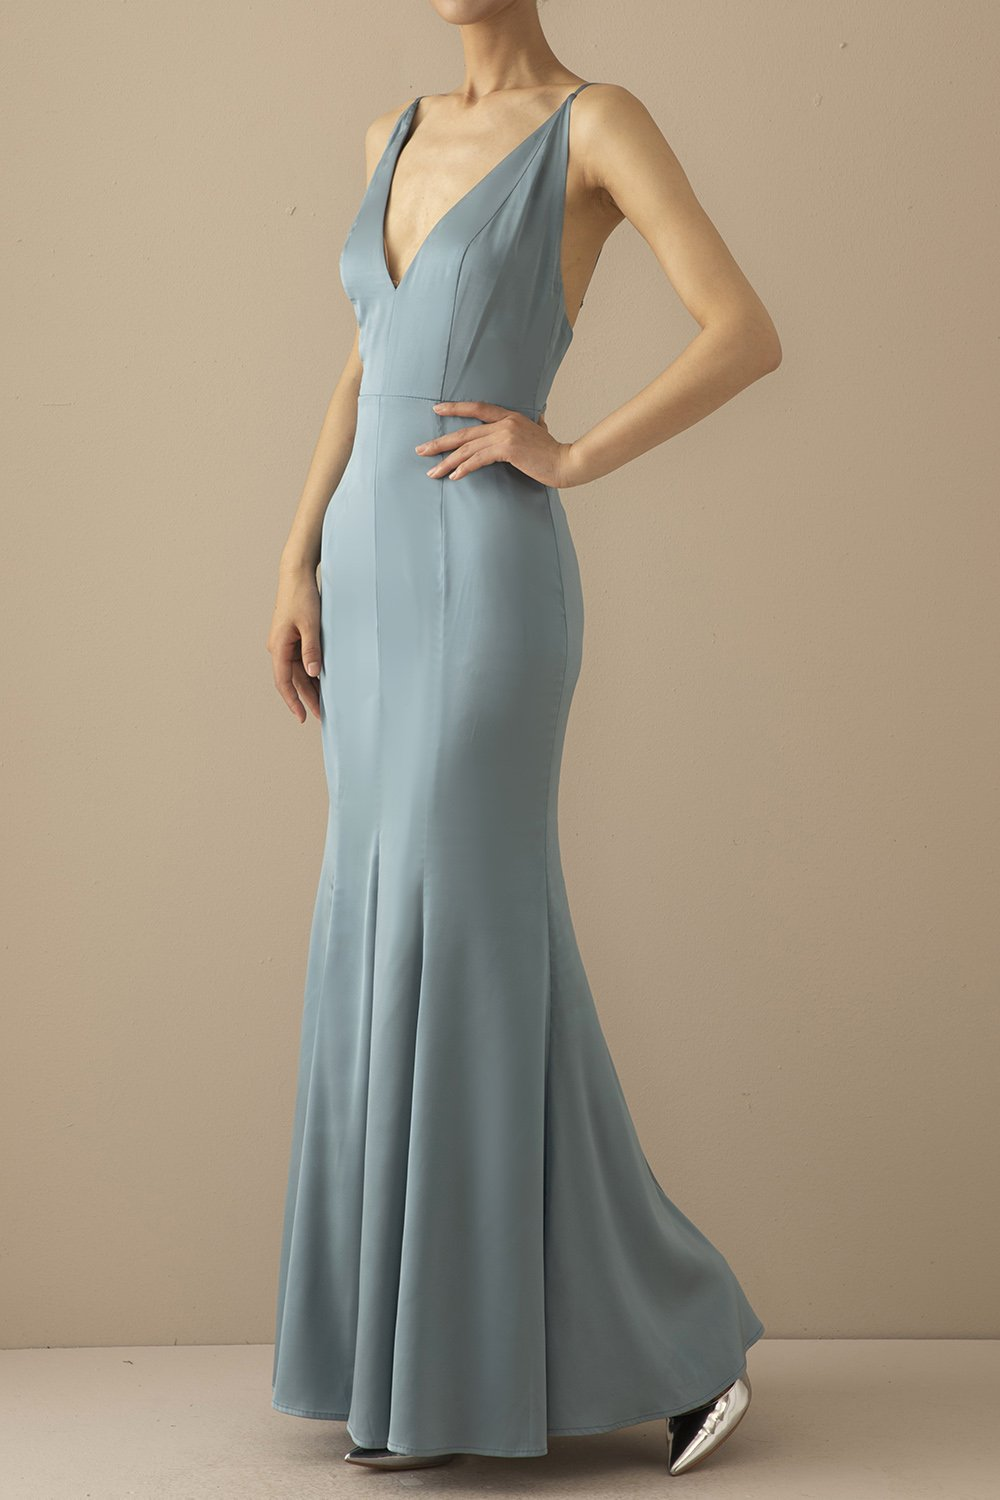 Mermaid Blue V Neck Long Prom Dress